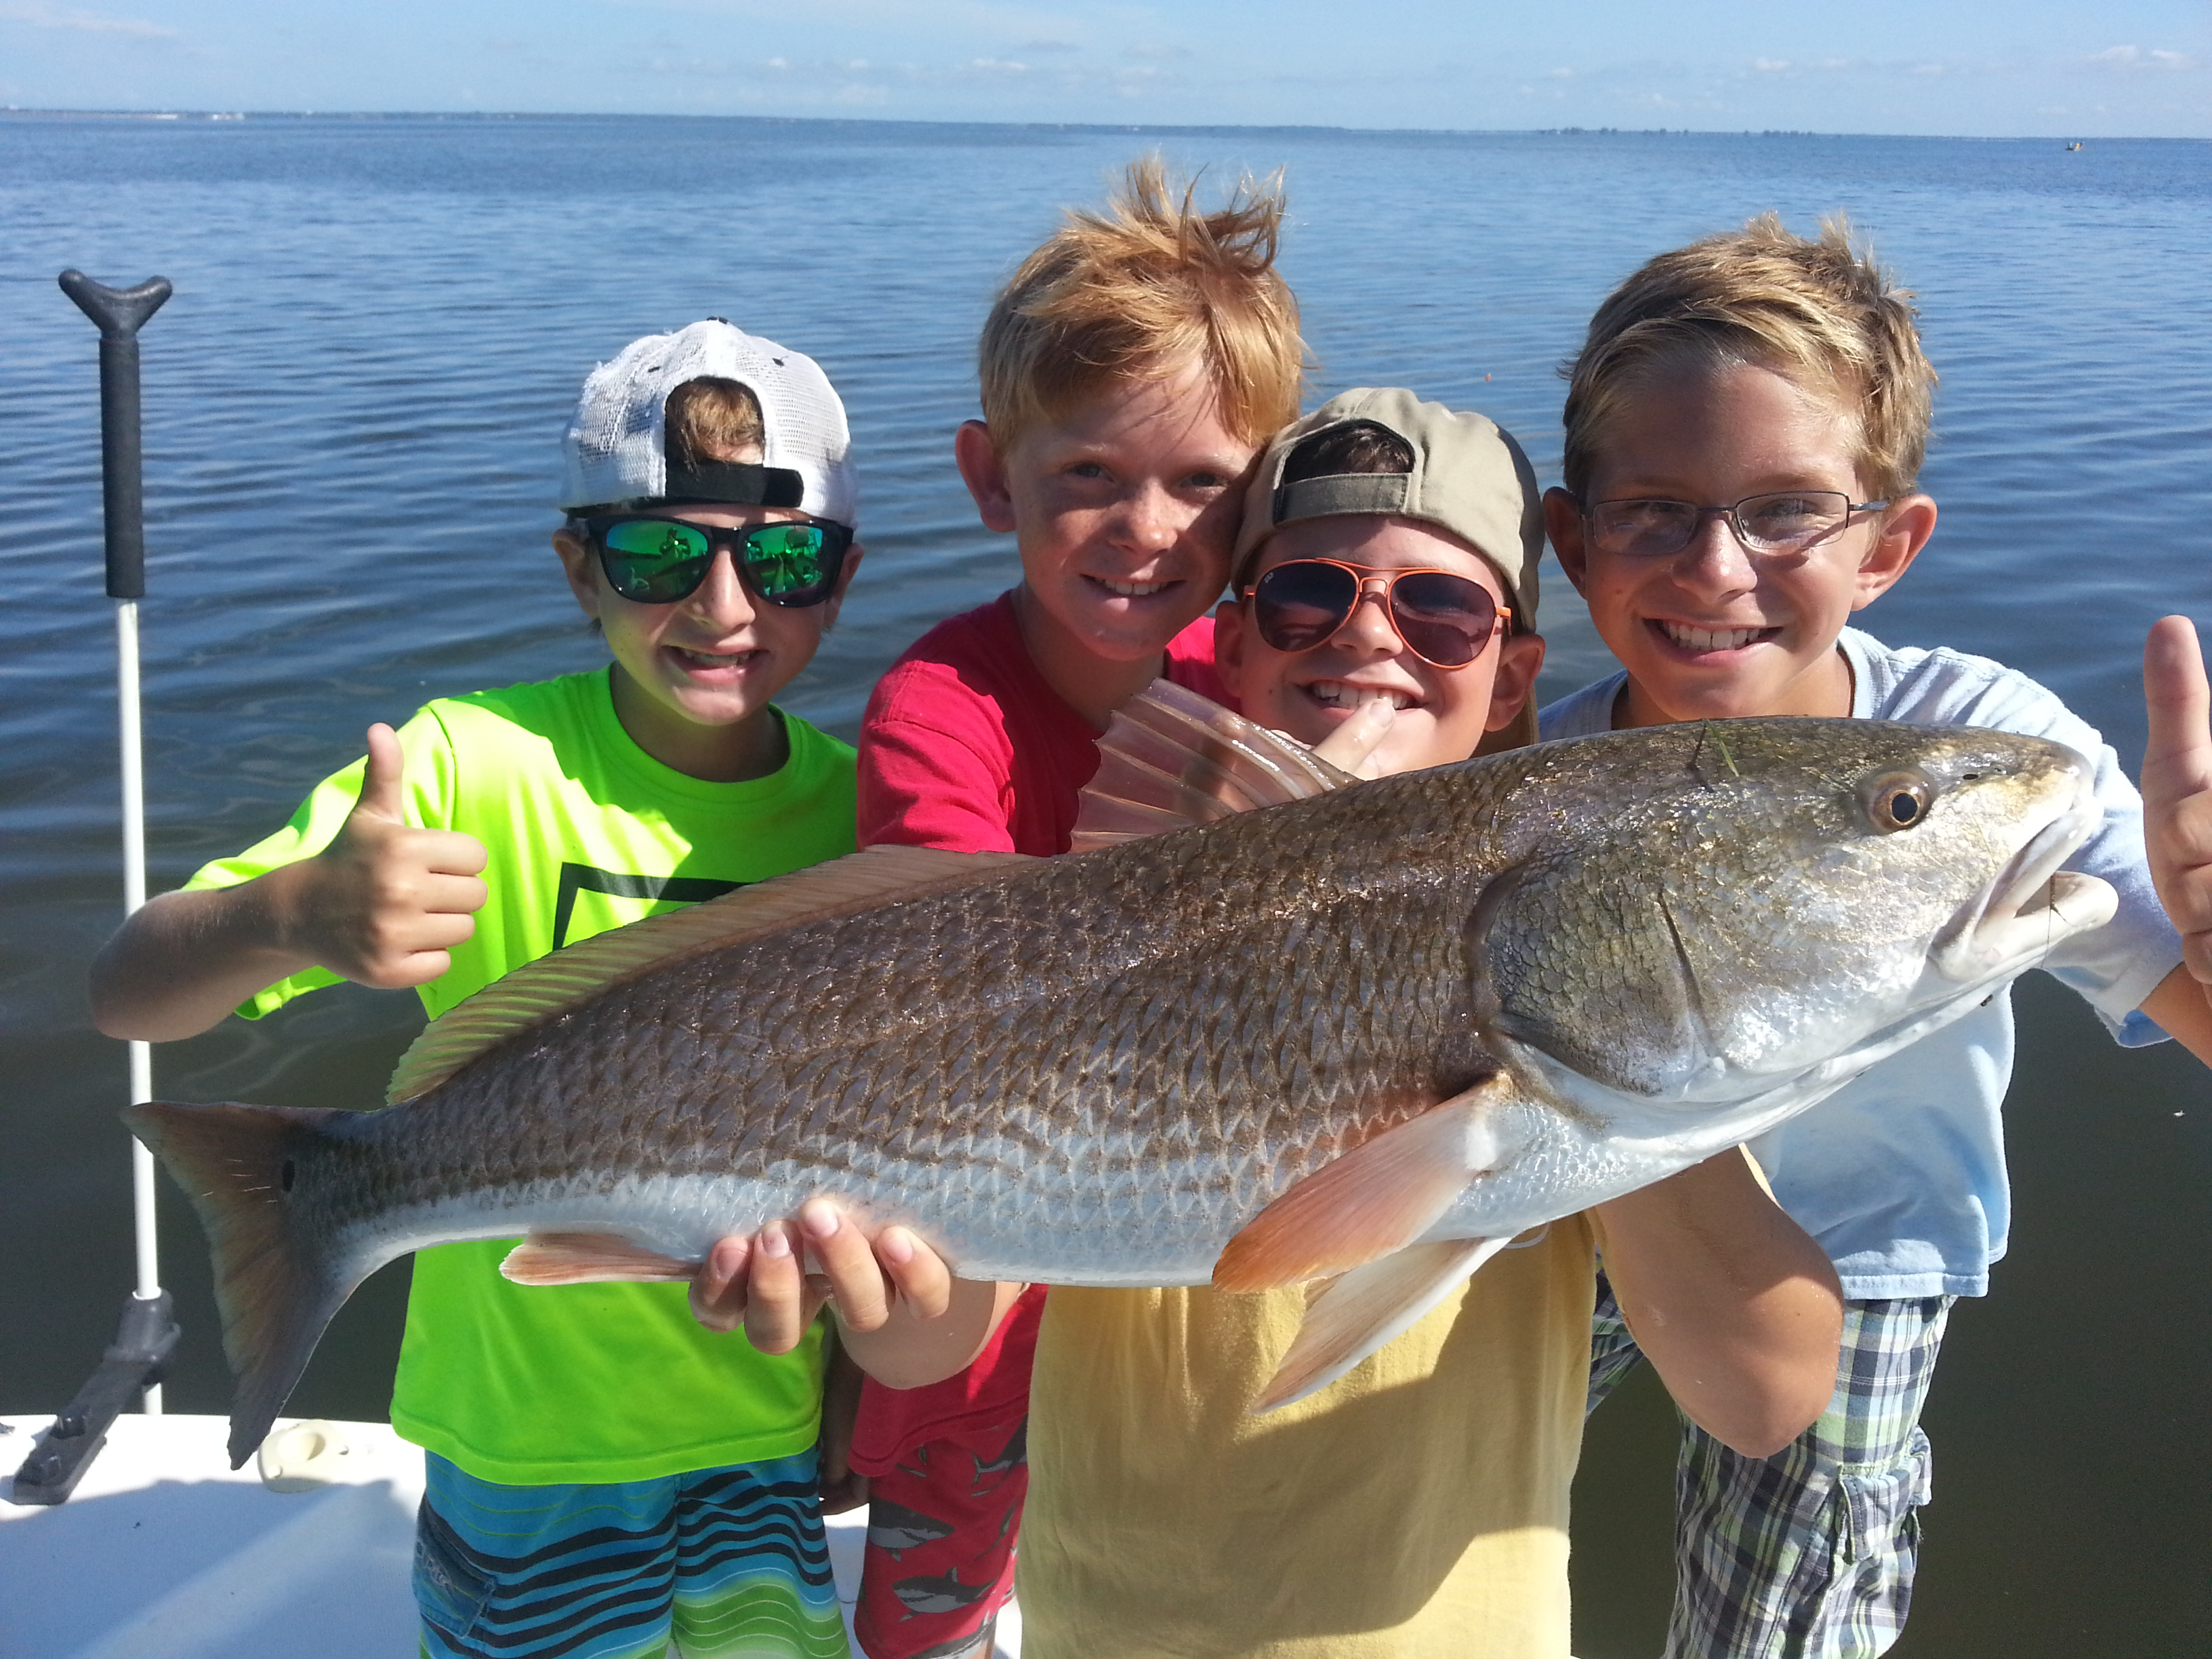 Tampa fishing charters inc tampa florida fl for Fishing charters tampa